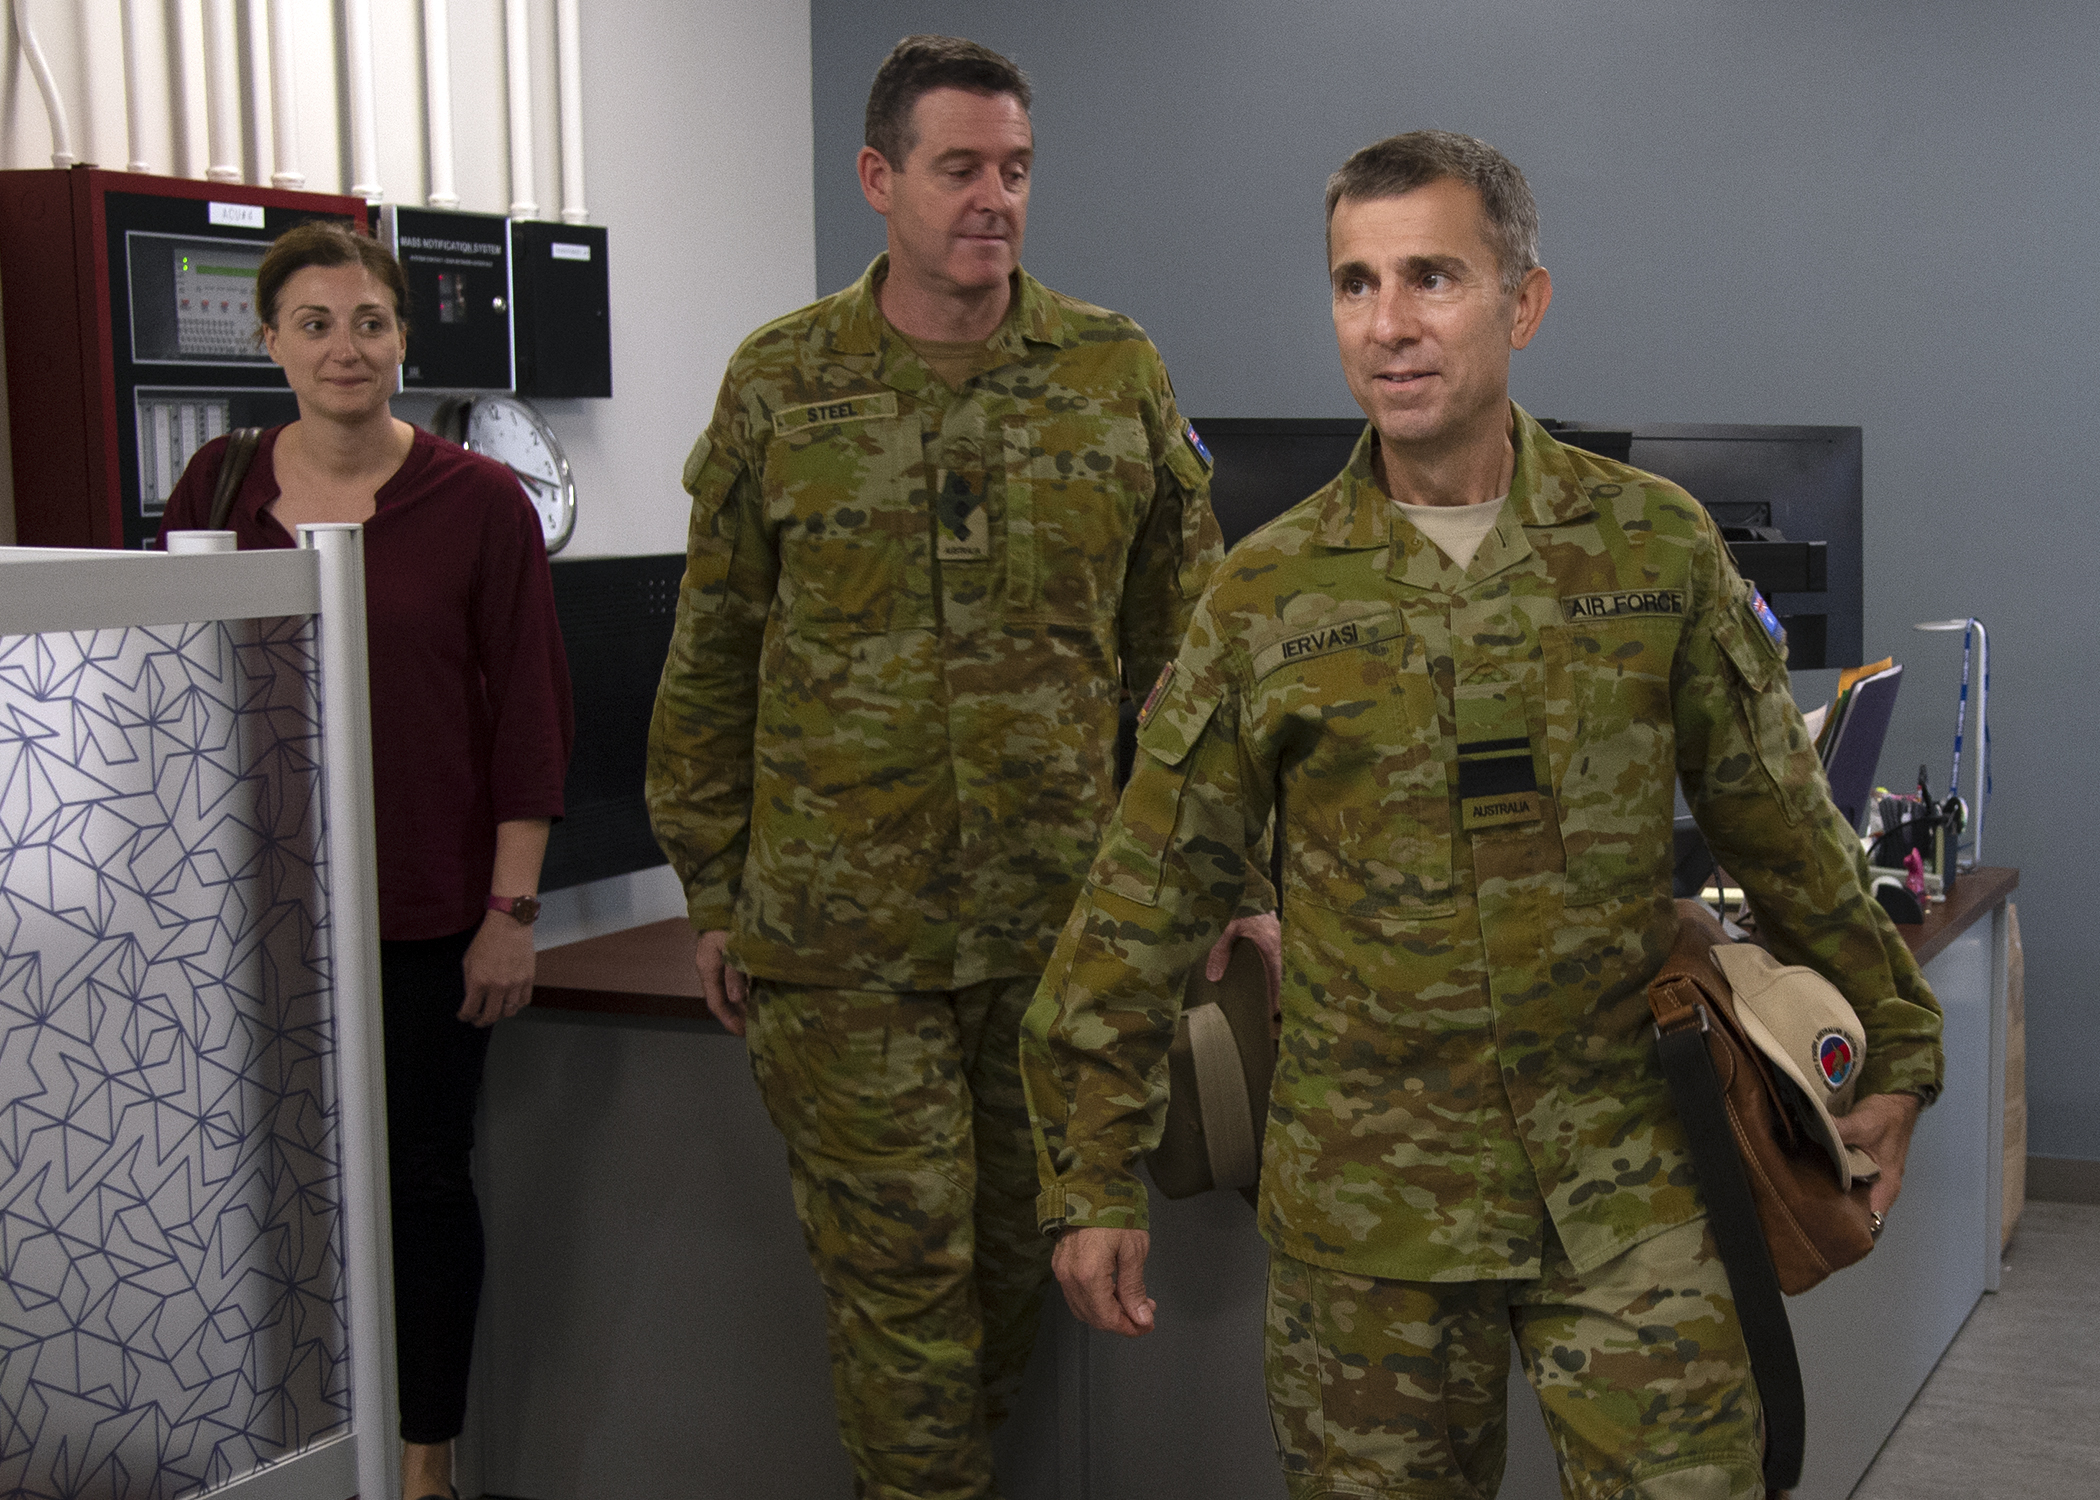 Royal Australian air force Air Vice-Marshal Vincent Iervasi, right, arrives at Combined Joint Task Force-Horn of Africa (CJTF-HOA) to meet with CJTF-HOA leadership at Camp Lemonnier, Djibouti, May 7, 2019. Iervasi visited CJTF-HOA to discuss the continued partnership in Africa between Australia and the United States. (U.S. Navy photo by Mass Communication Specialist 1st Class Nick Scott)